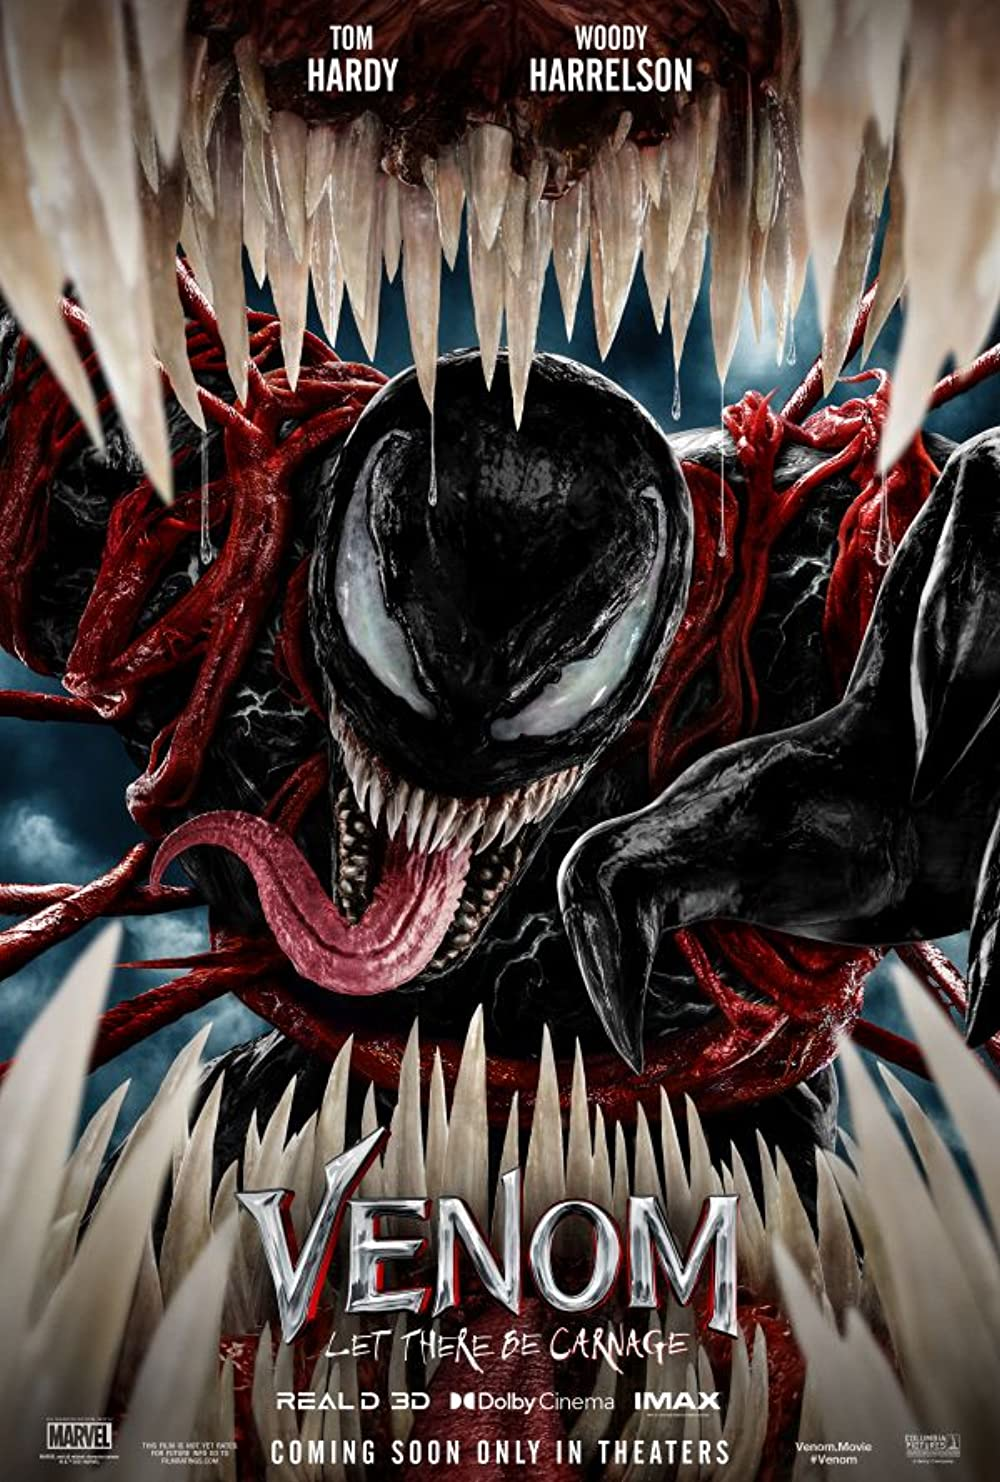 Venom Let There Be Carnage 2021 Hindi Dubbed Official Trailer 1080p HDRip 41MB Download